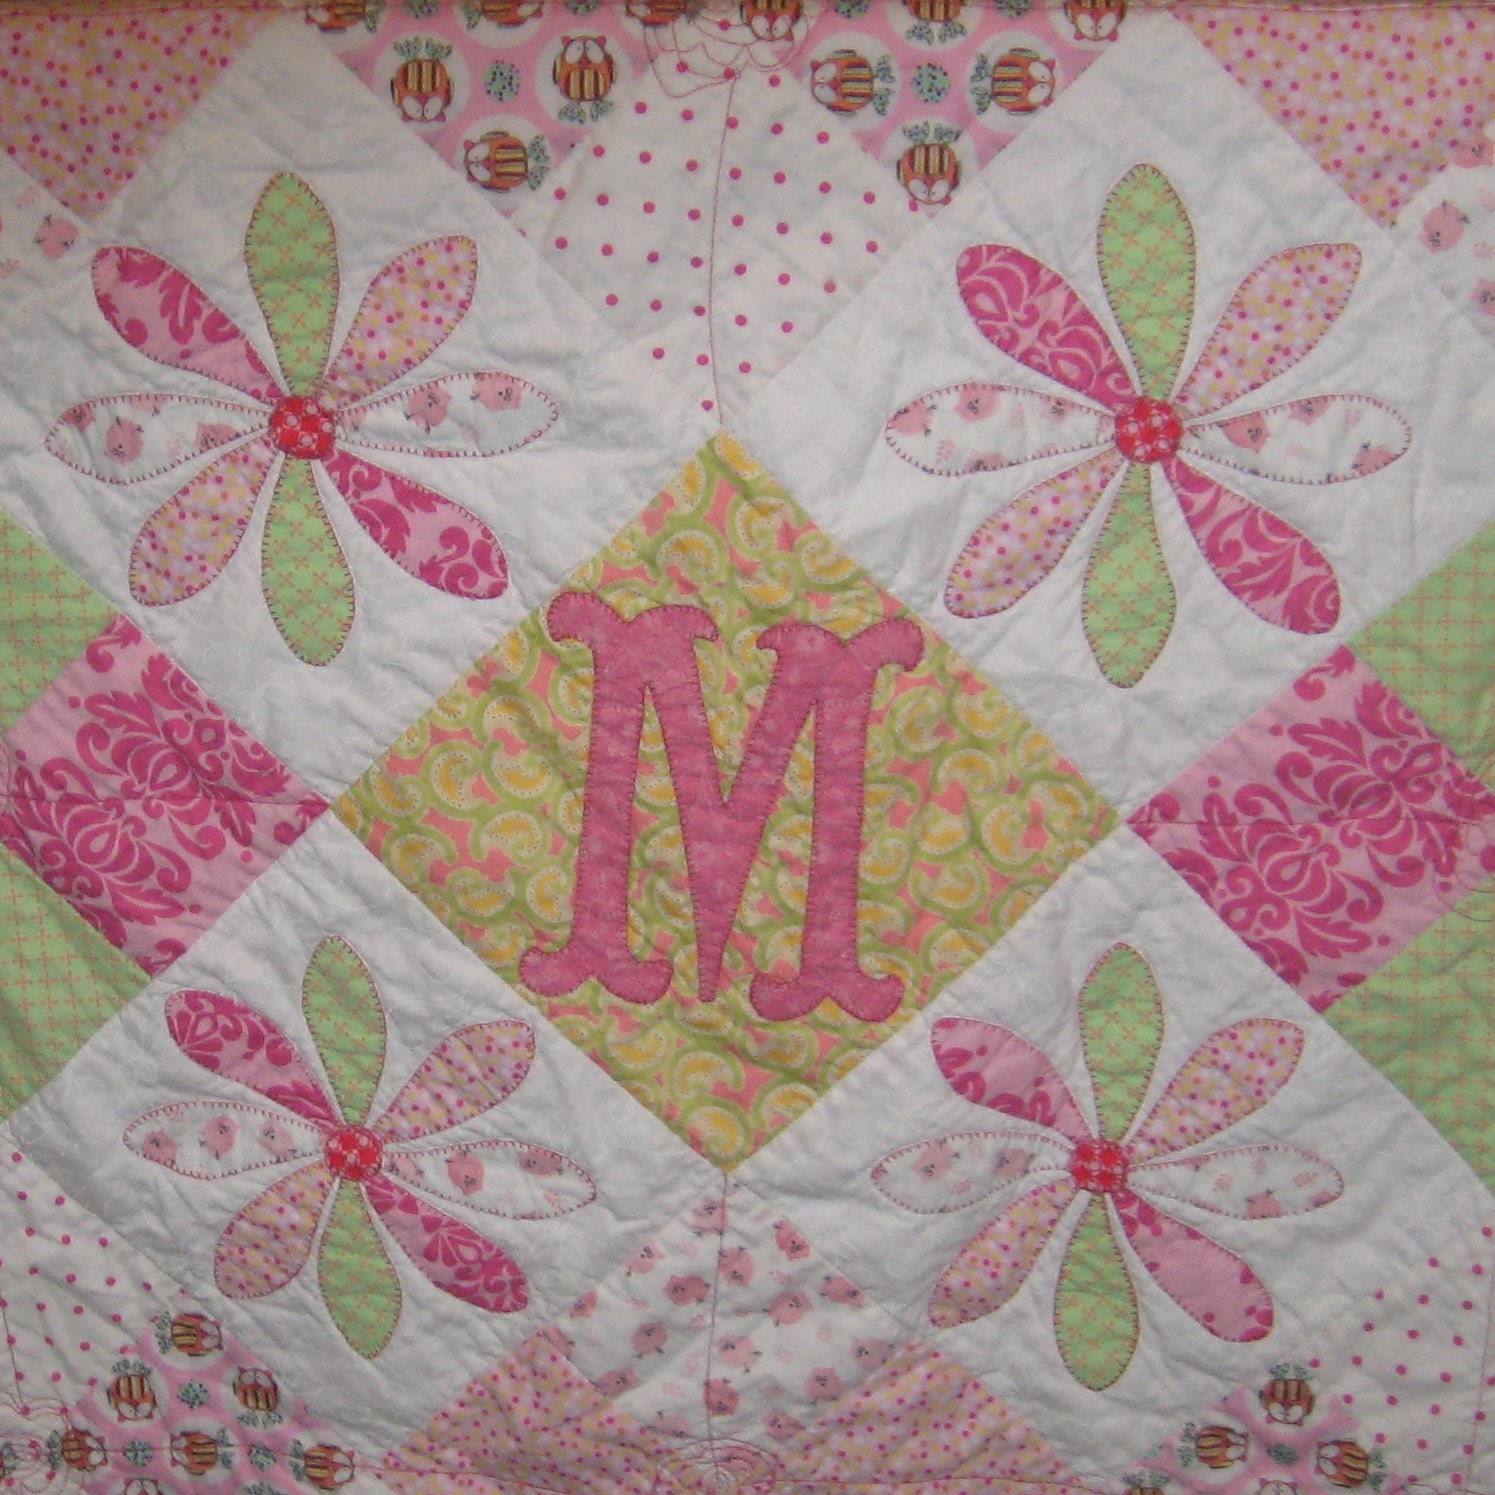 handmade quilts for sale handmade quilts for sale by junebugquilts on etsy 4193